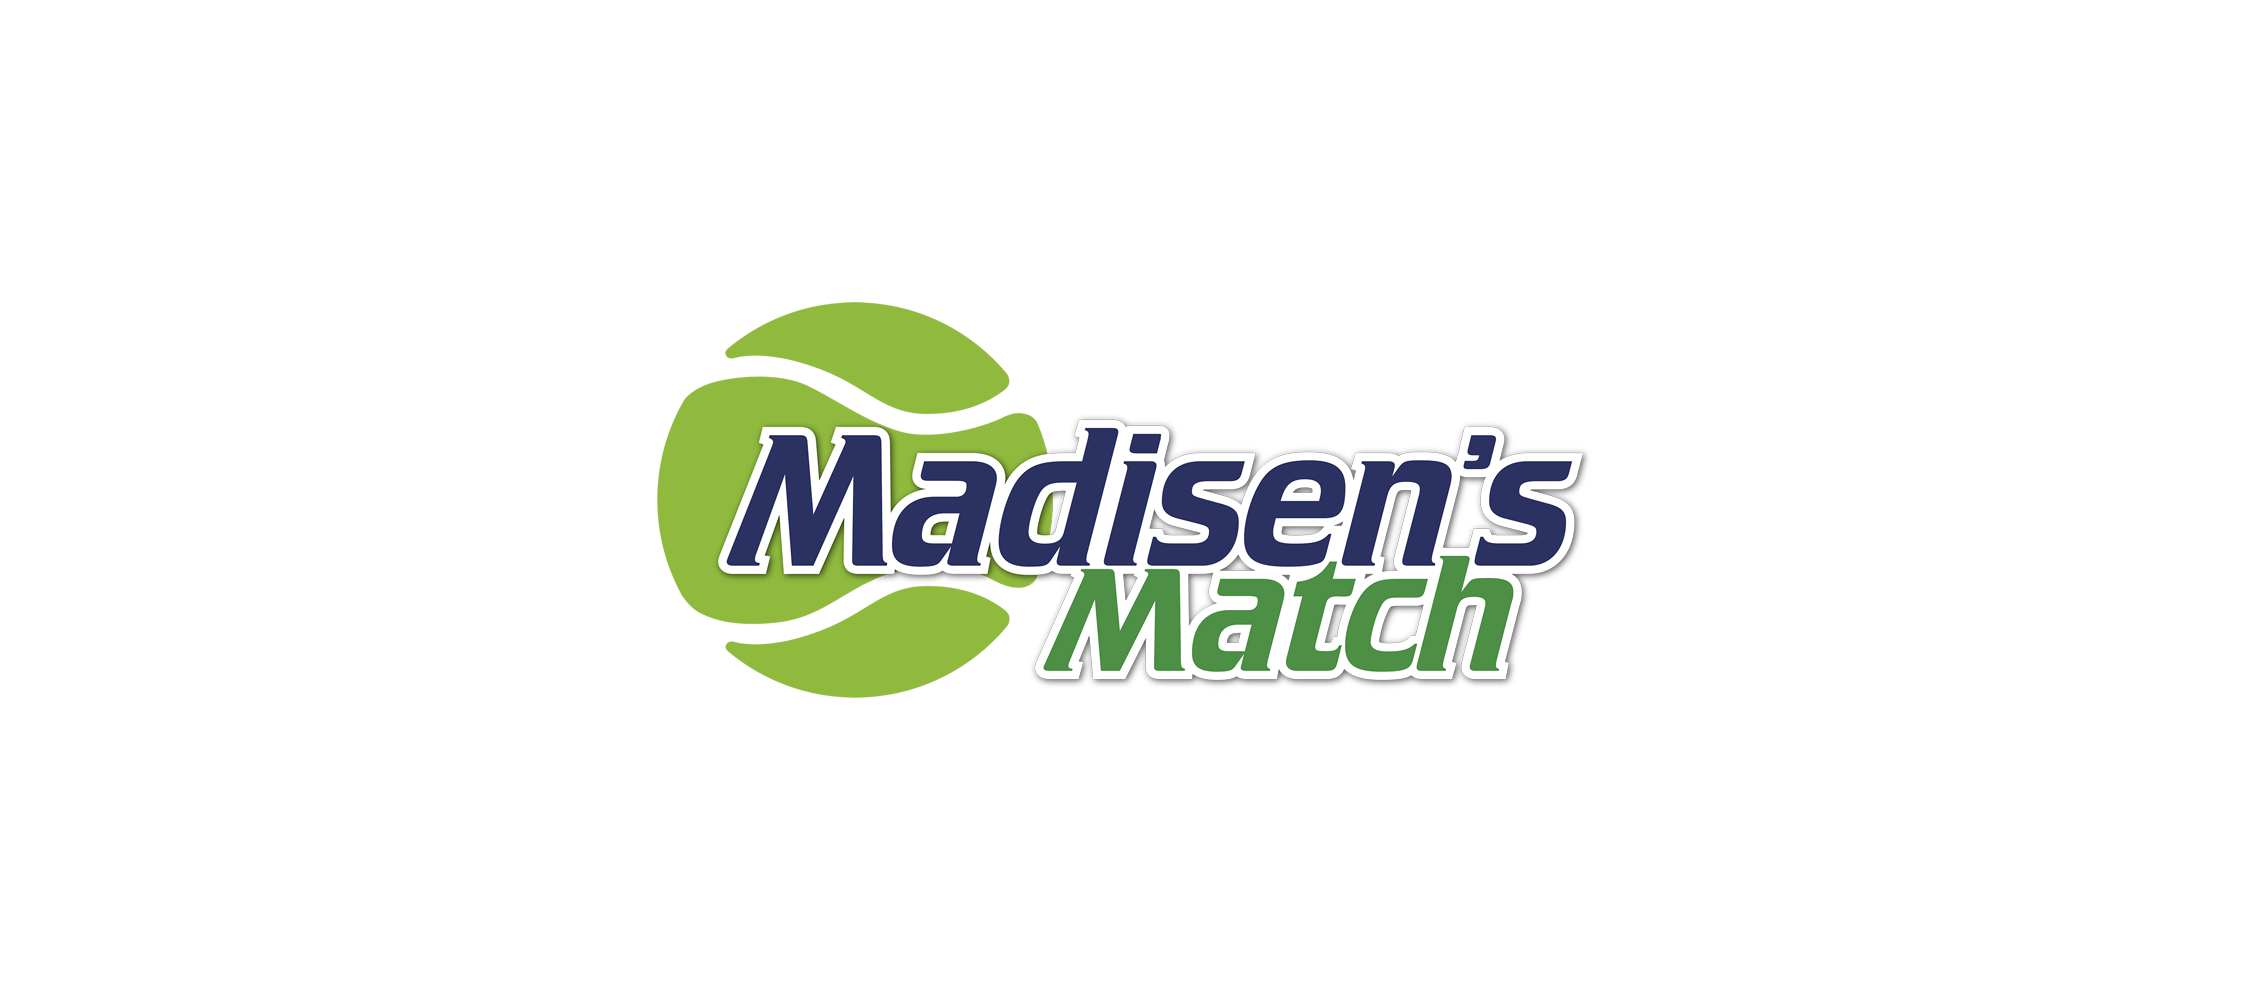 Madisen's Match online event serving up more than tennis May 10-14